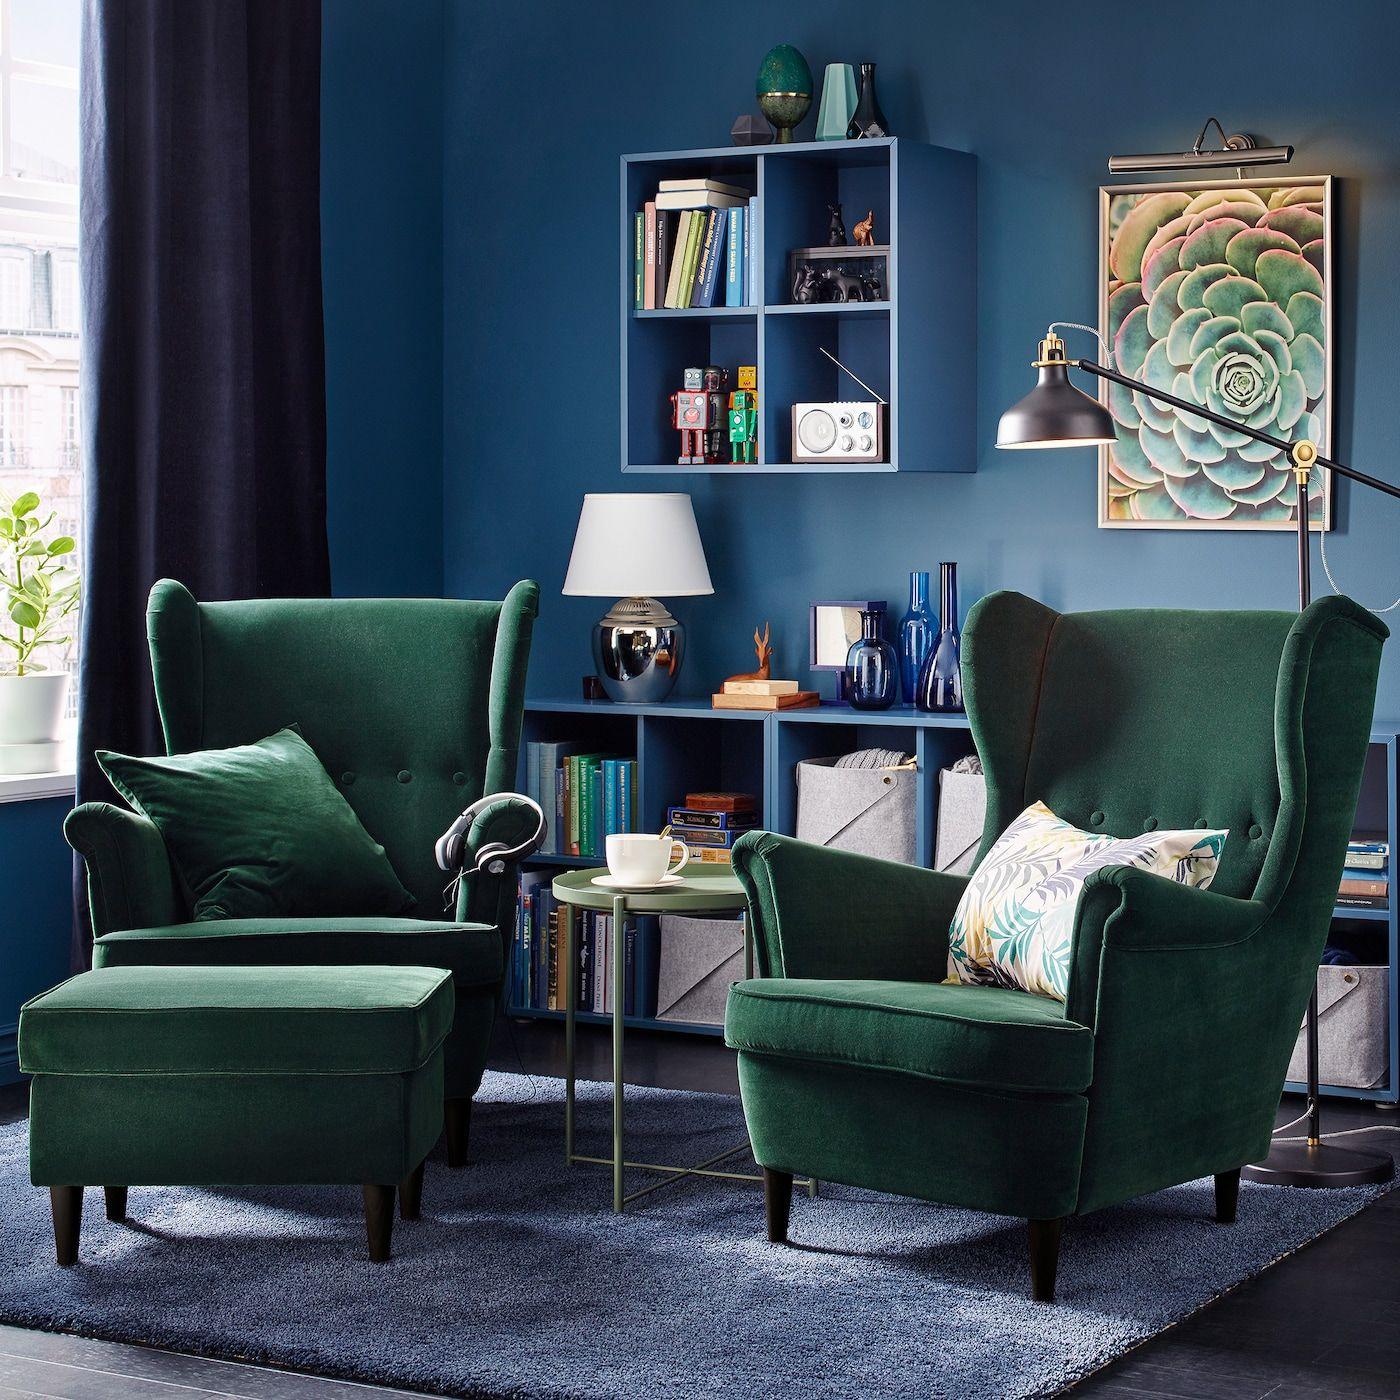 16 Pin on Living room furniture inspiration